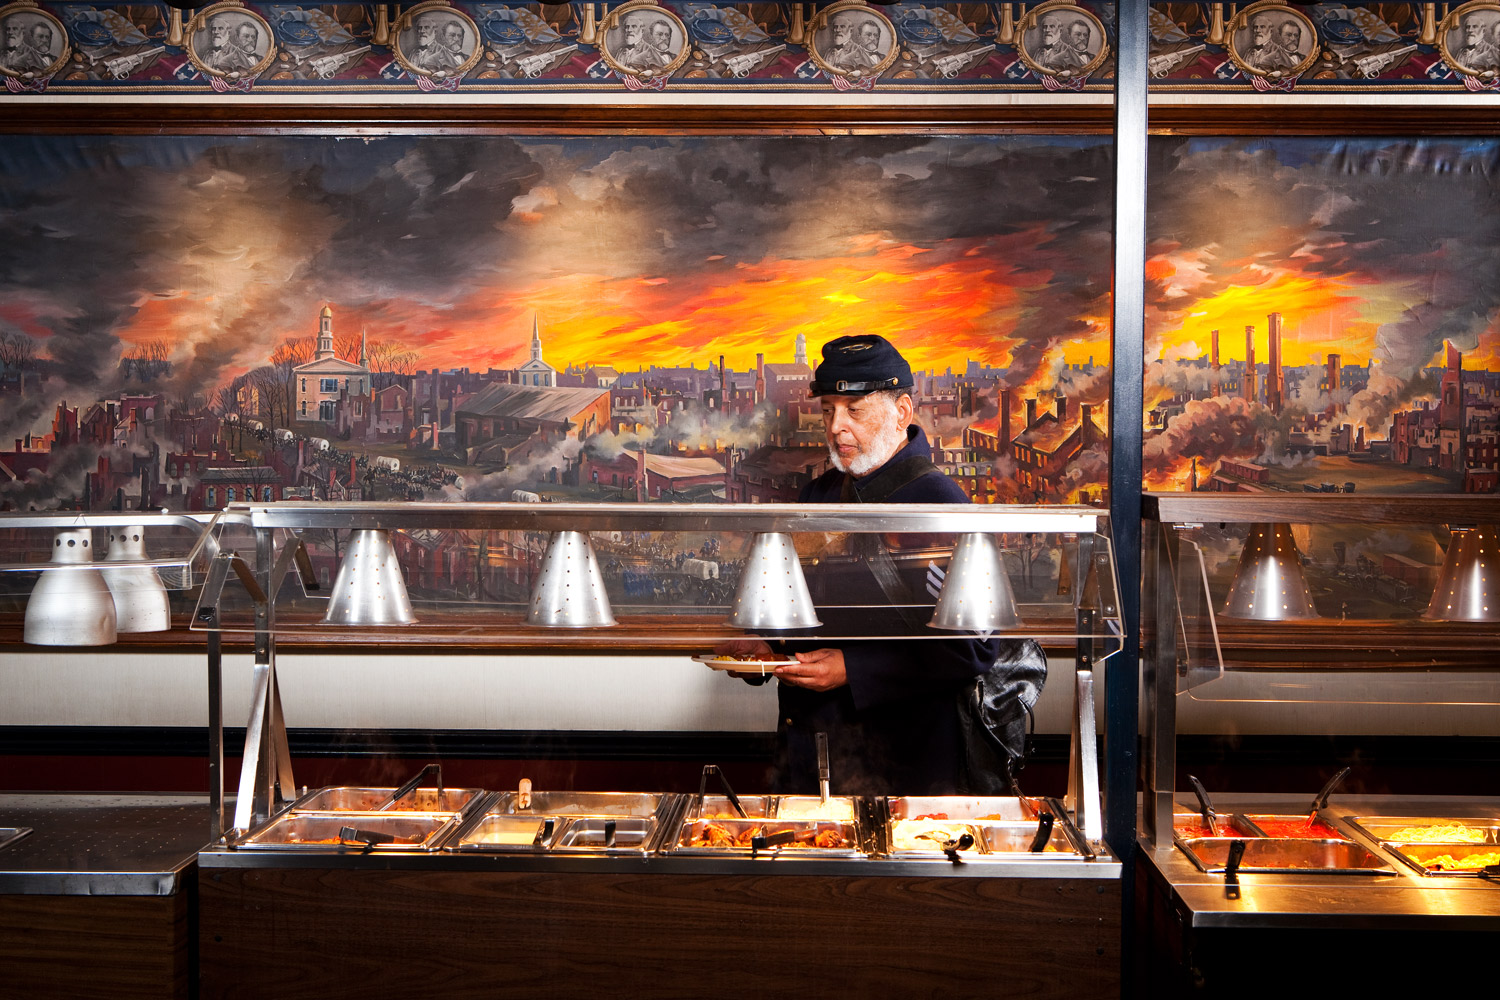 Gettysburg, Pa.                               Charles Hawley gets a bite to eat at General Pickett's Buffet. The mural behind Hawley depicts the collapse of the Confederacy.